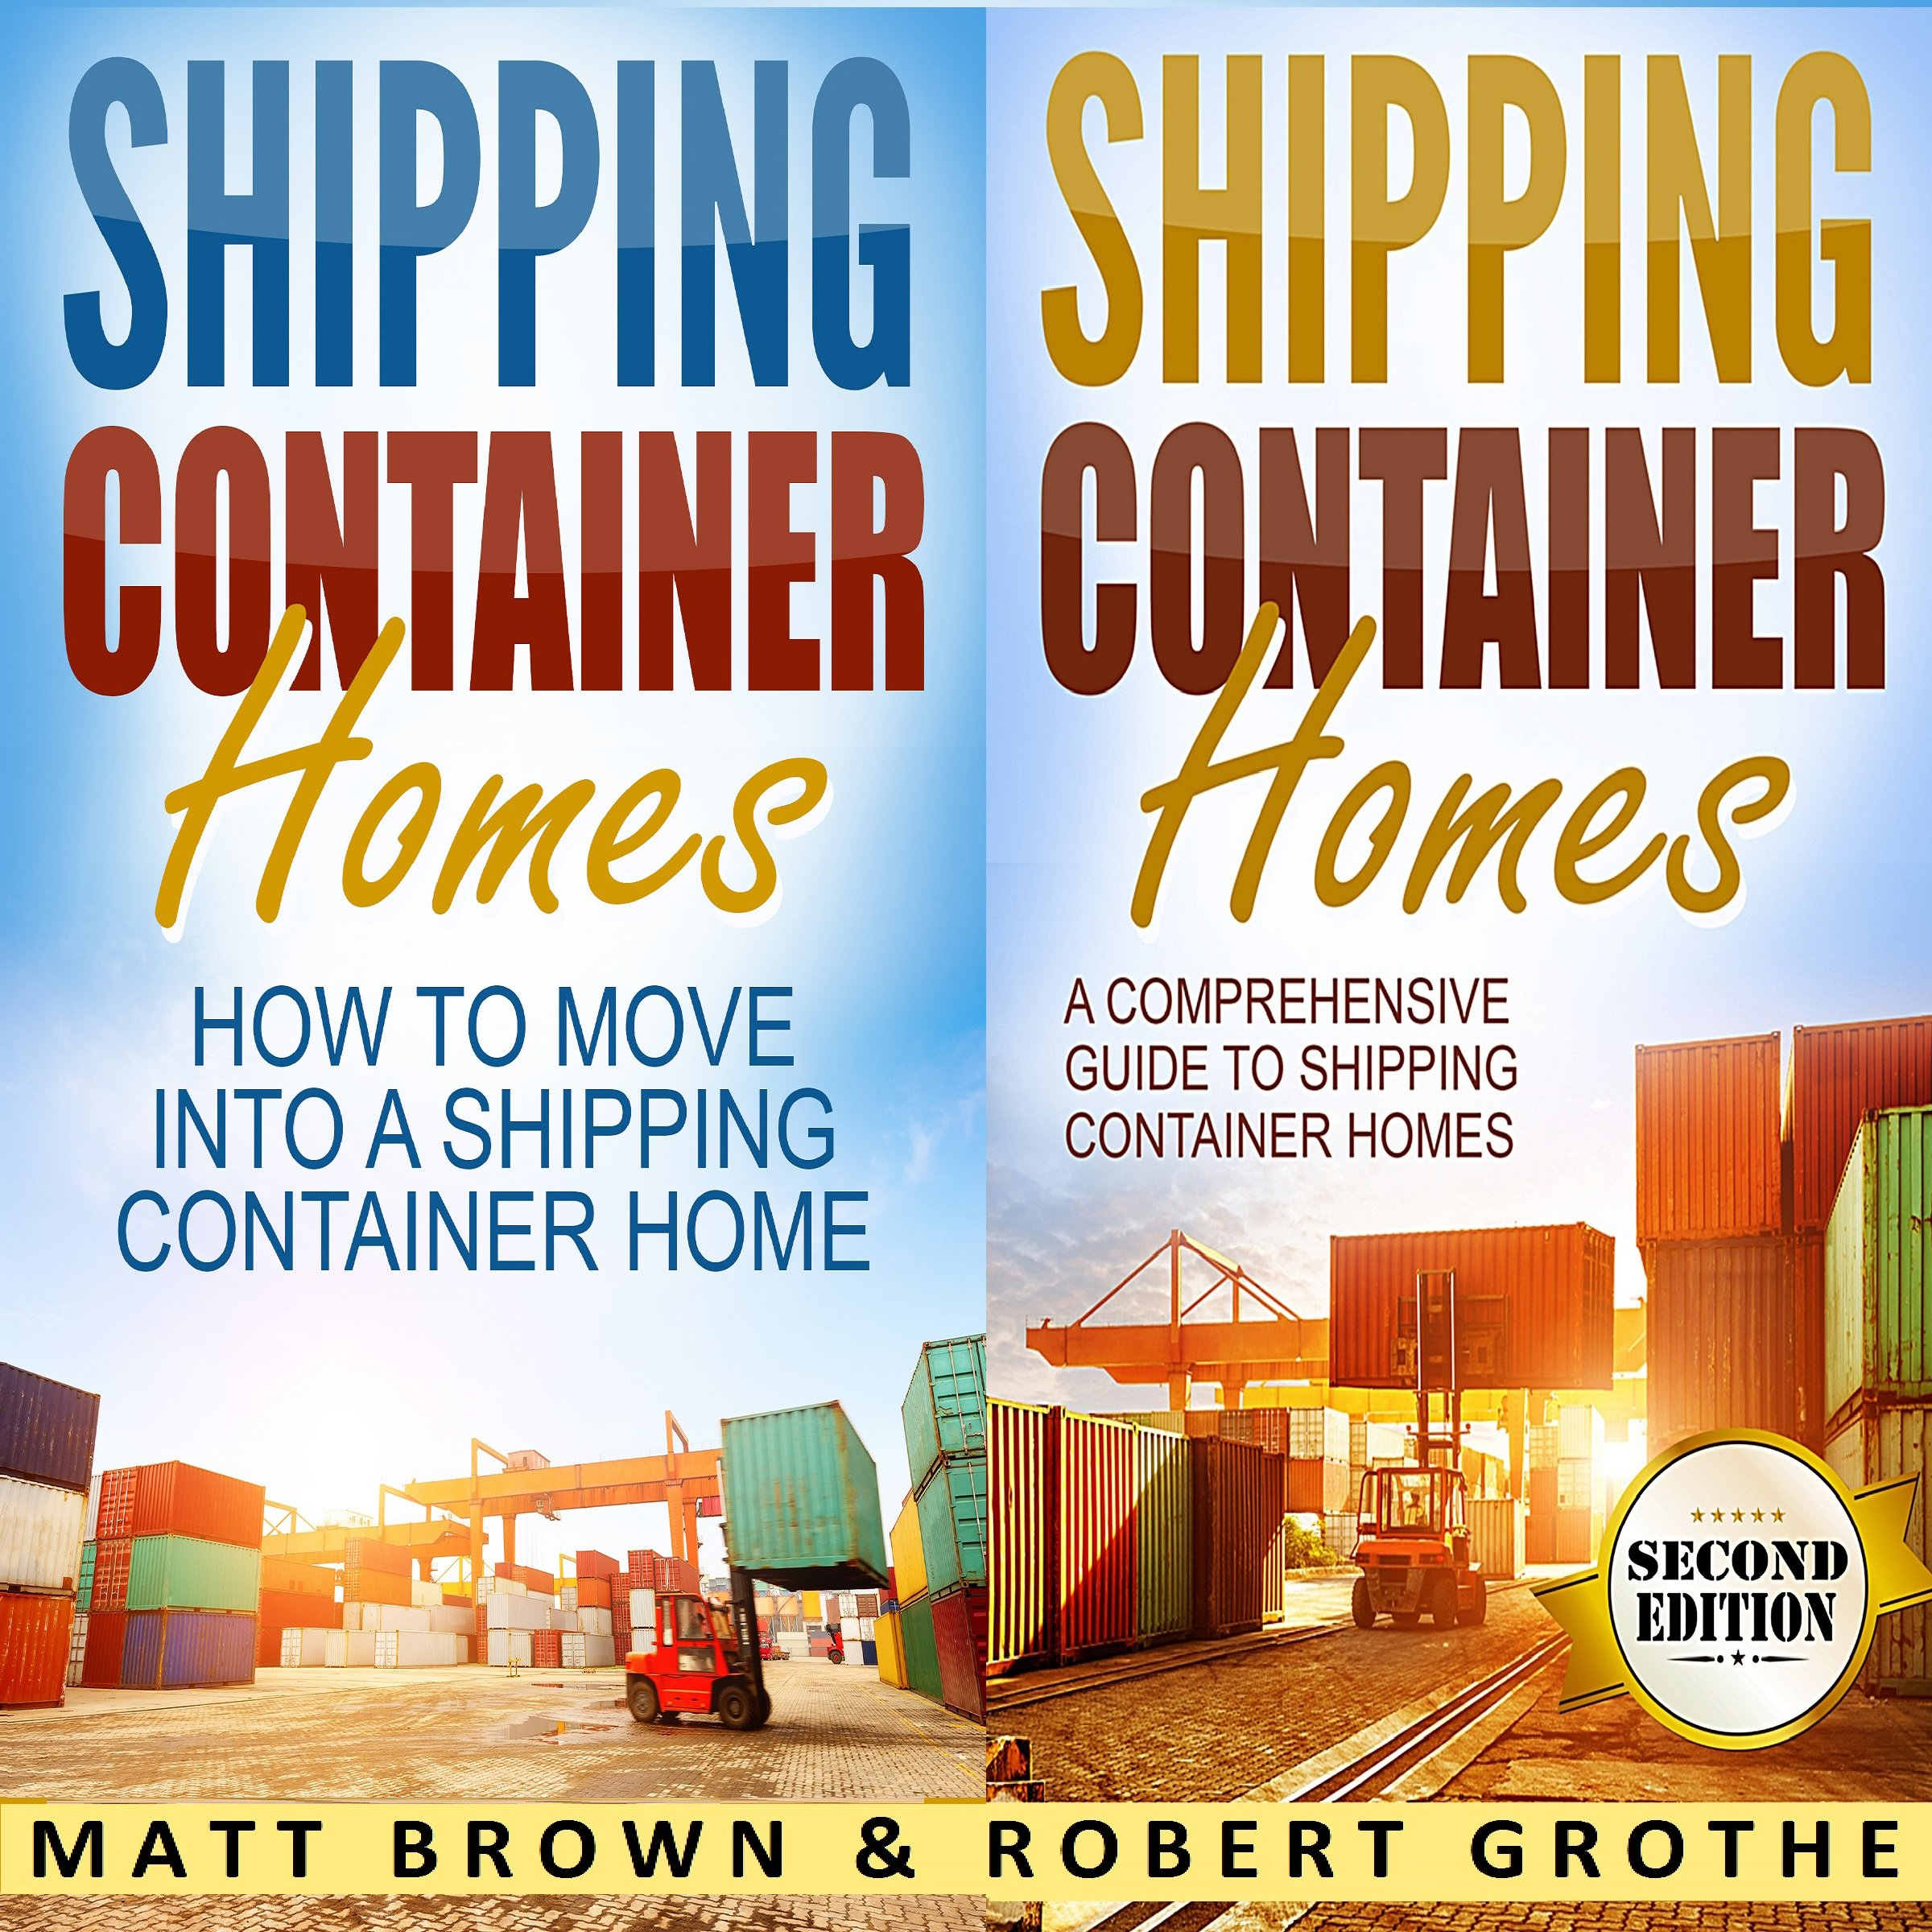 Shipping Container Homes: 2 in 1 Bundle: How to Move into a Shipping Container Home and a Comprehensive Guide to Shipping Container Homes